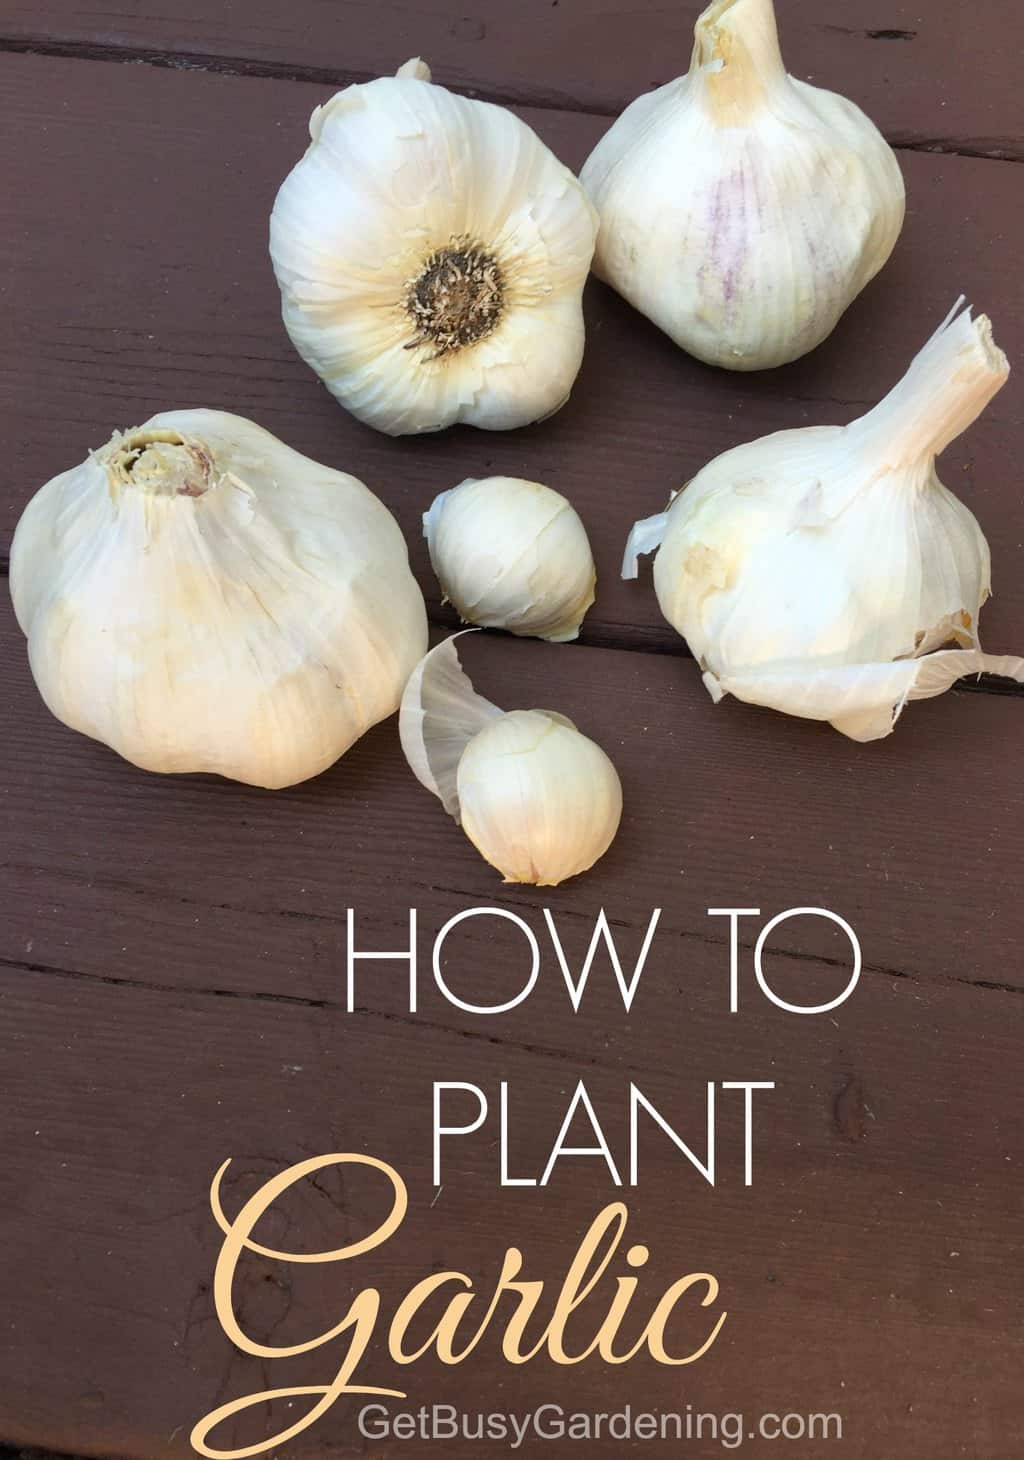 Growing garlic is actually pretty easy, but timing is everything. Learn how to plant garlic in your garden in just a few simple steps.